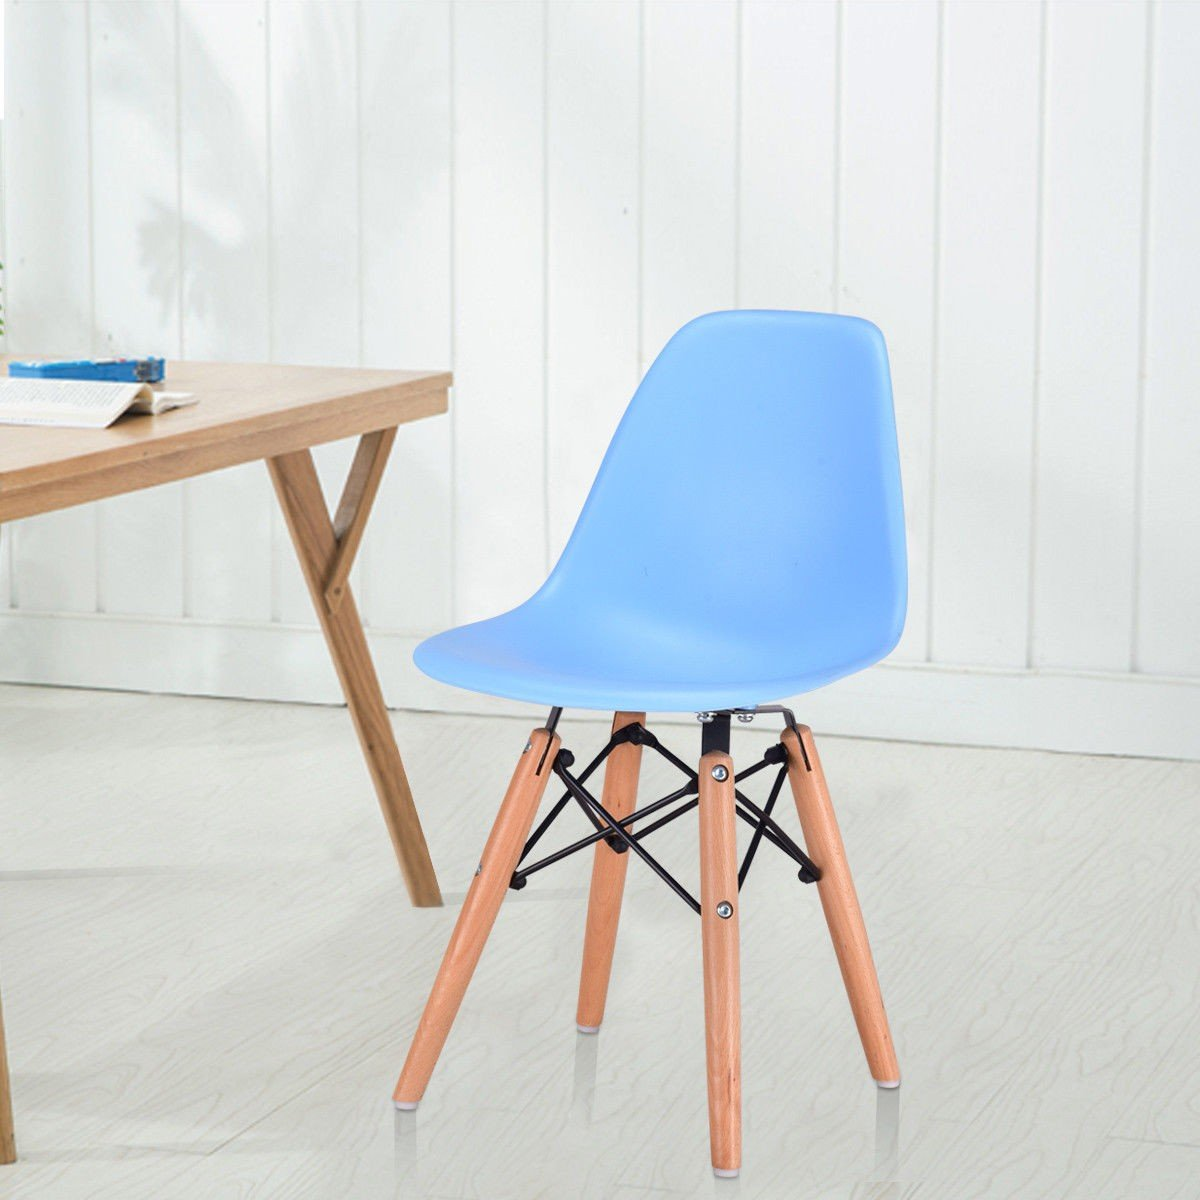 Custpromo Kids White Dining Chairs Mid Century Shell Chair Wooden Legs Armless Chairs (Navy)